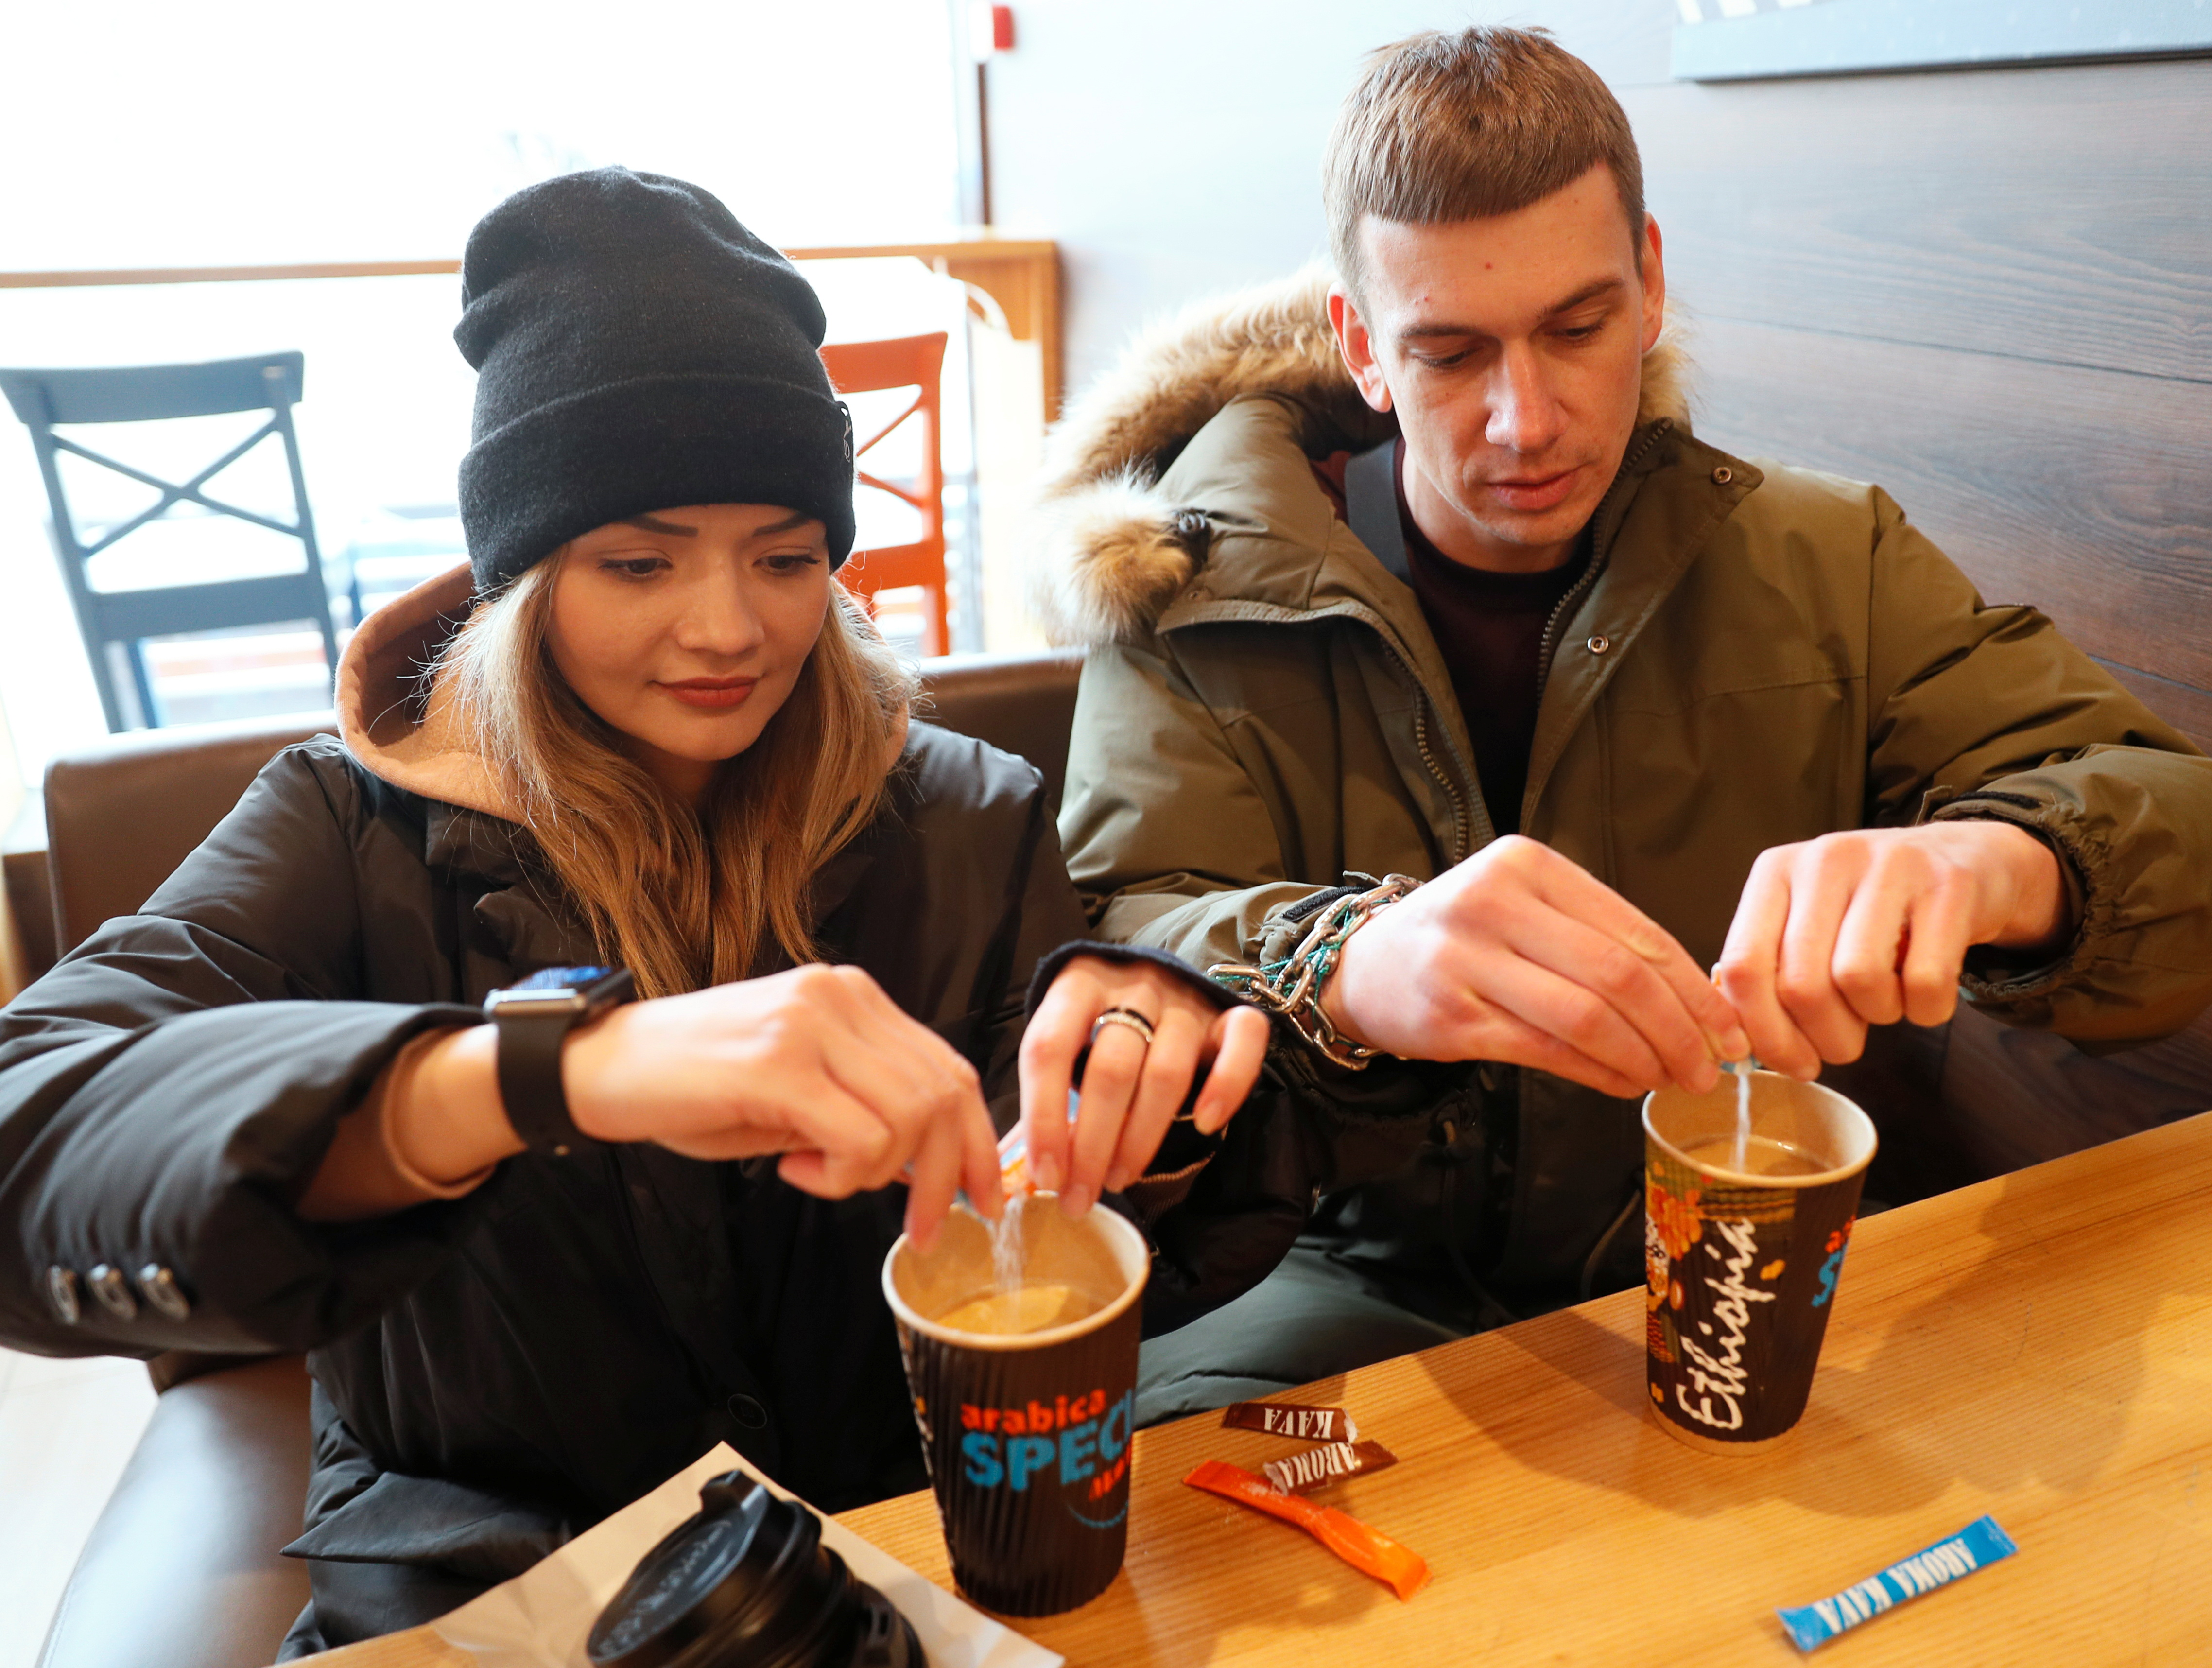 Alexandr Kudlay, 33, and Viktoria Pustovitova, 28, drink coffee in a cafe in Kharkiv, Ukraine March 5, 2021. Tired of occasional break-ups, this Ukrainian couple found an unusual solution to stay inseparable. On St. Valentine's Day, they decided to handcuff their hands together for three months and began documenting their experience on social media. Picture taken March 5, 2021.  REUTERS/Gleb Garanich/File Photo